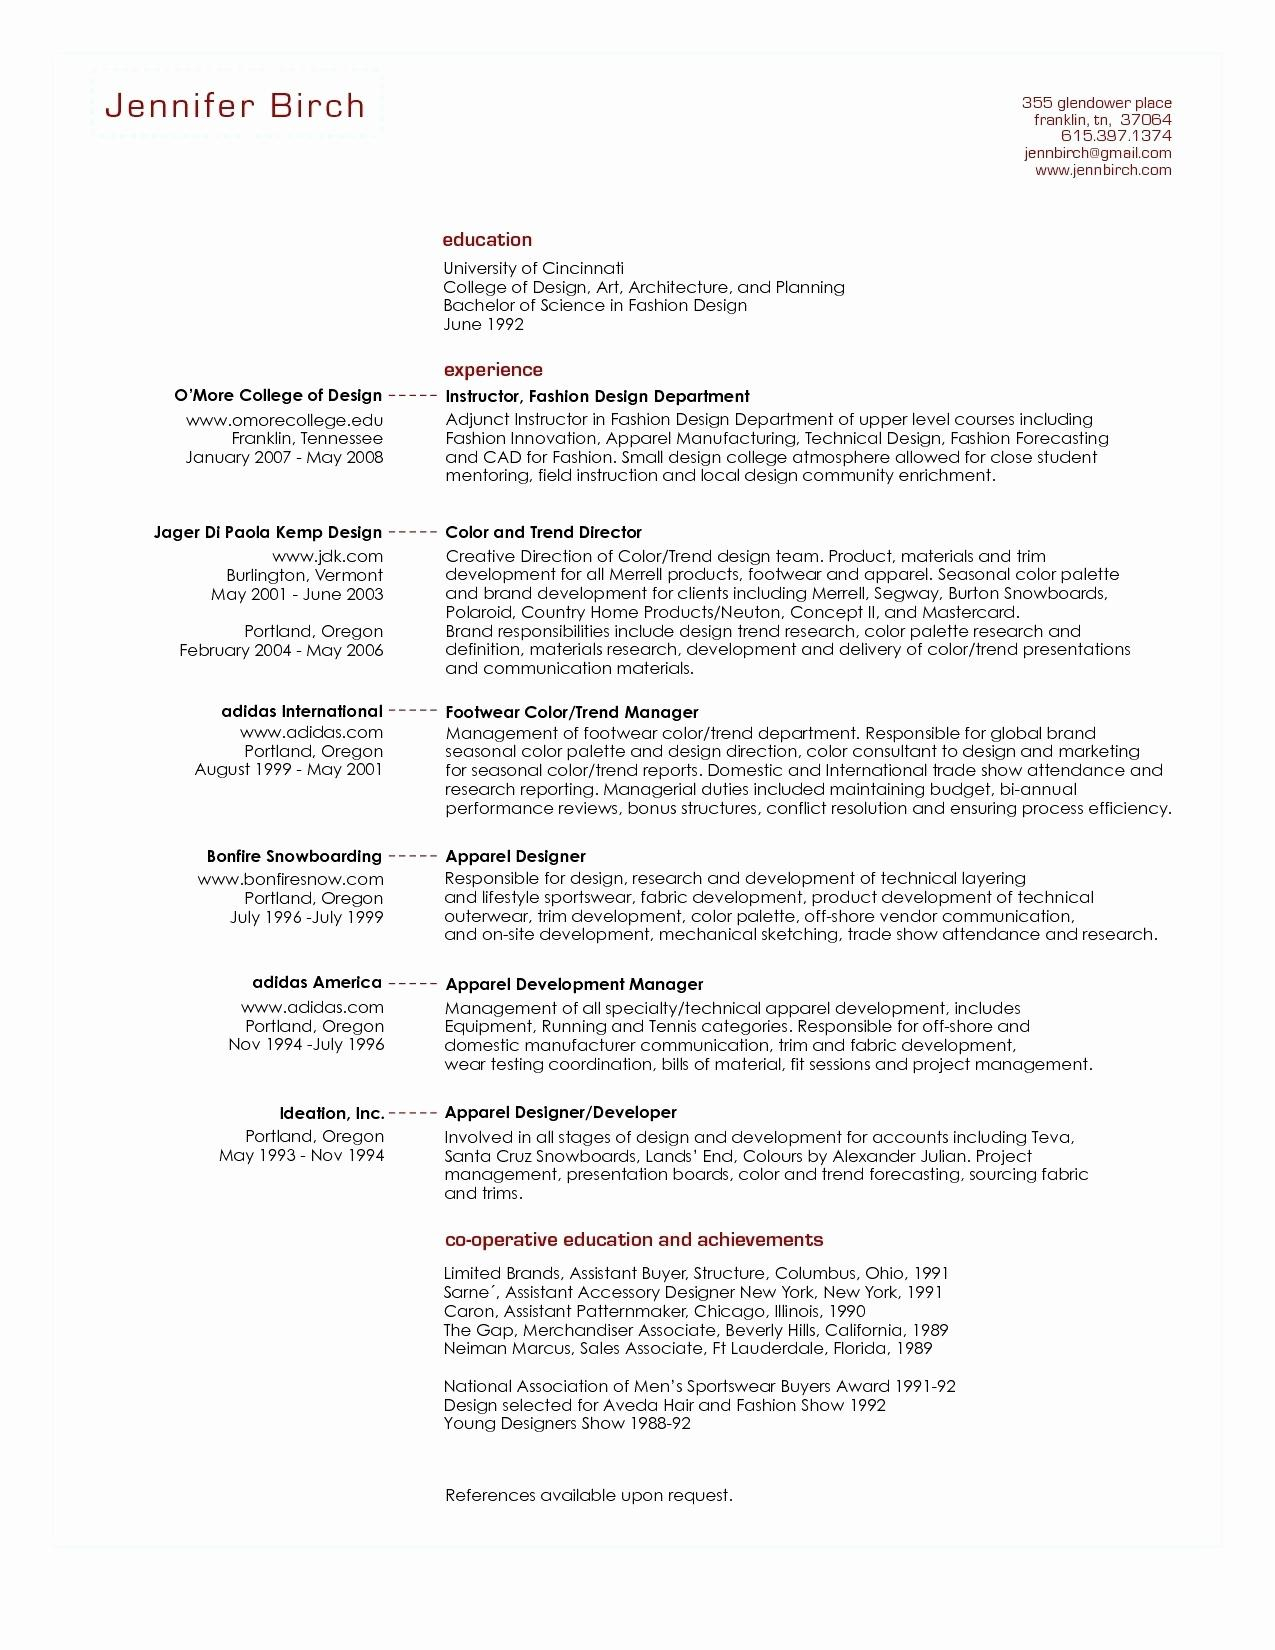 Arts Resume Template - Resume format for Bba Graduates Luxury Law Student Resume Template